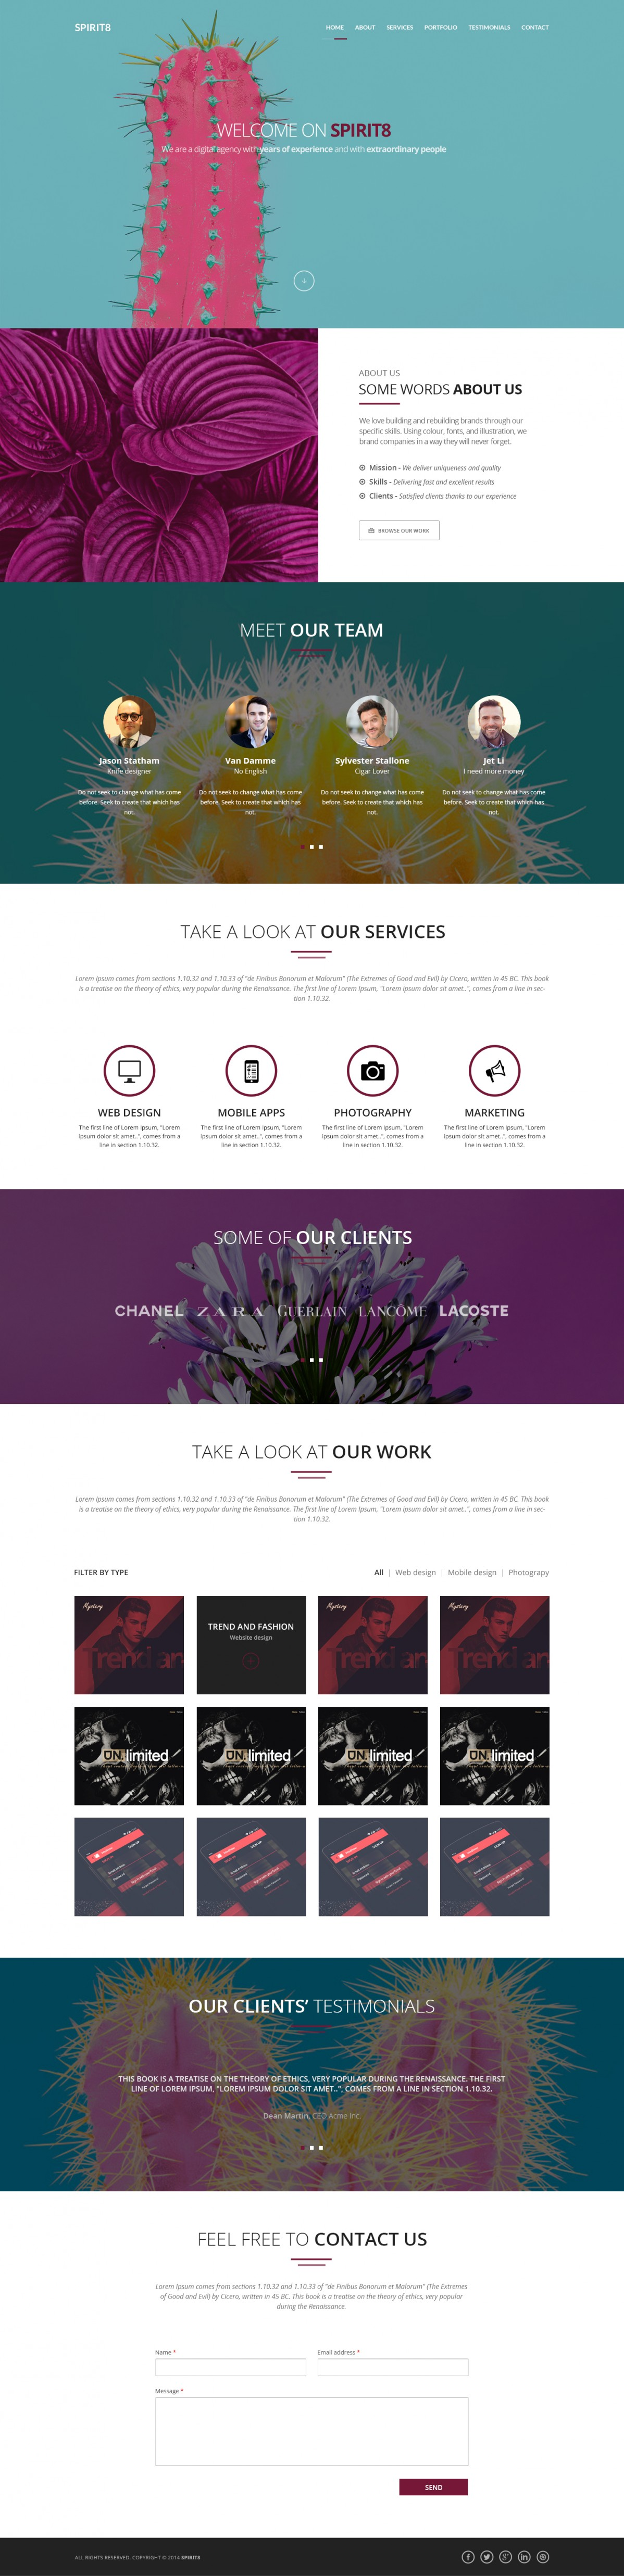 PSD template media agency, digital agency